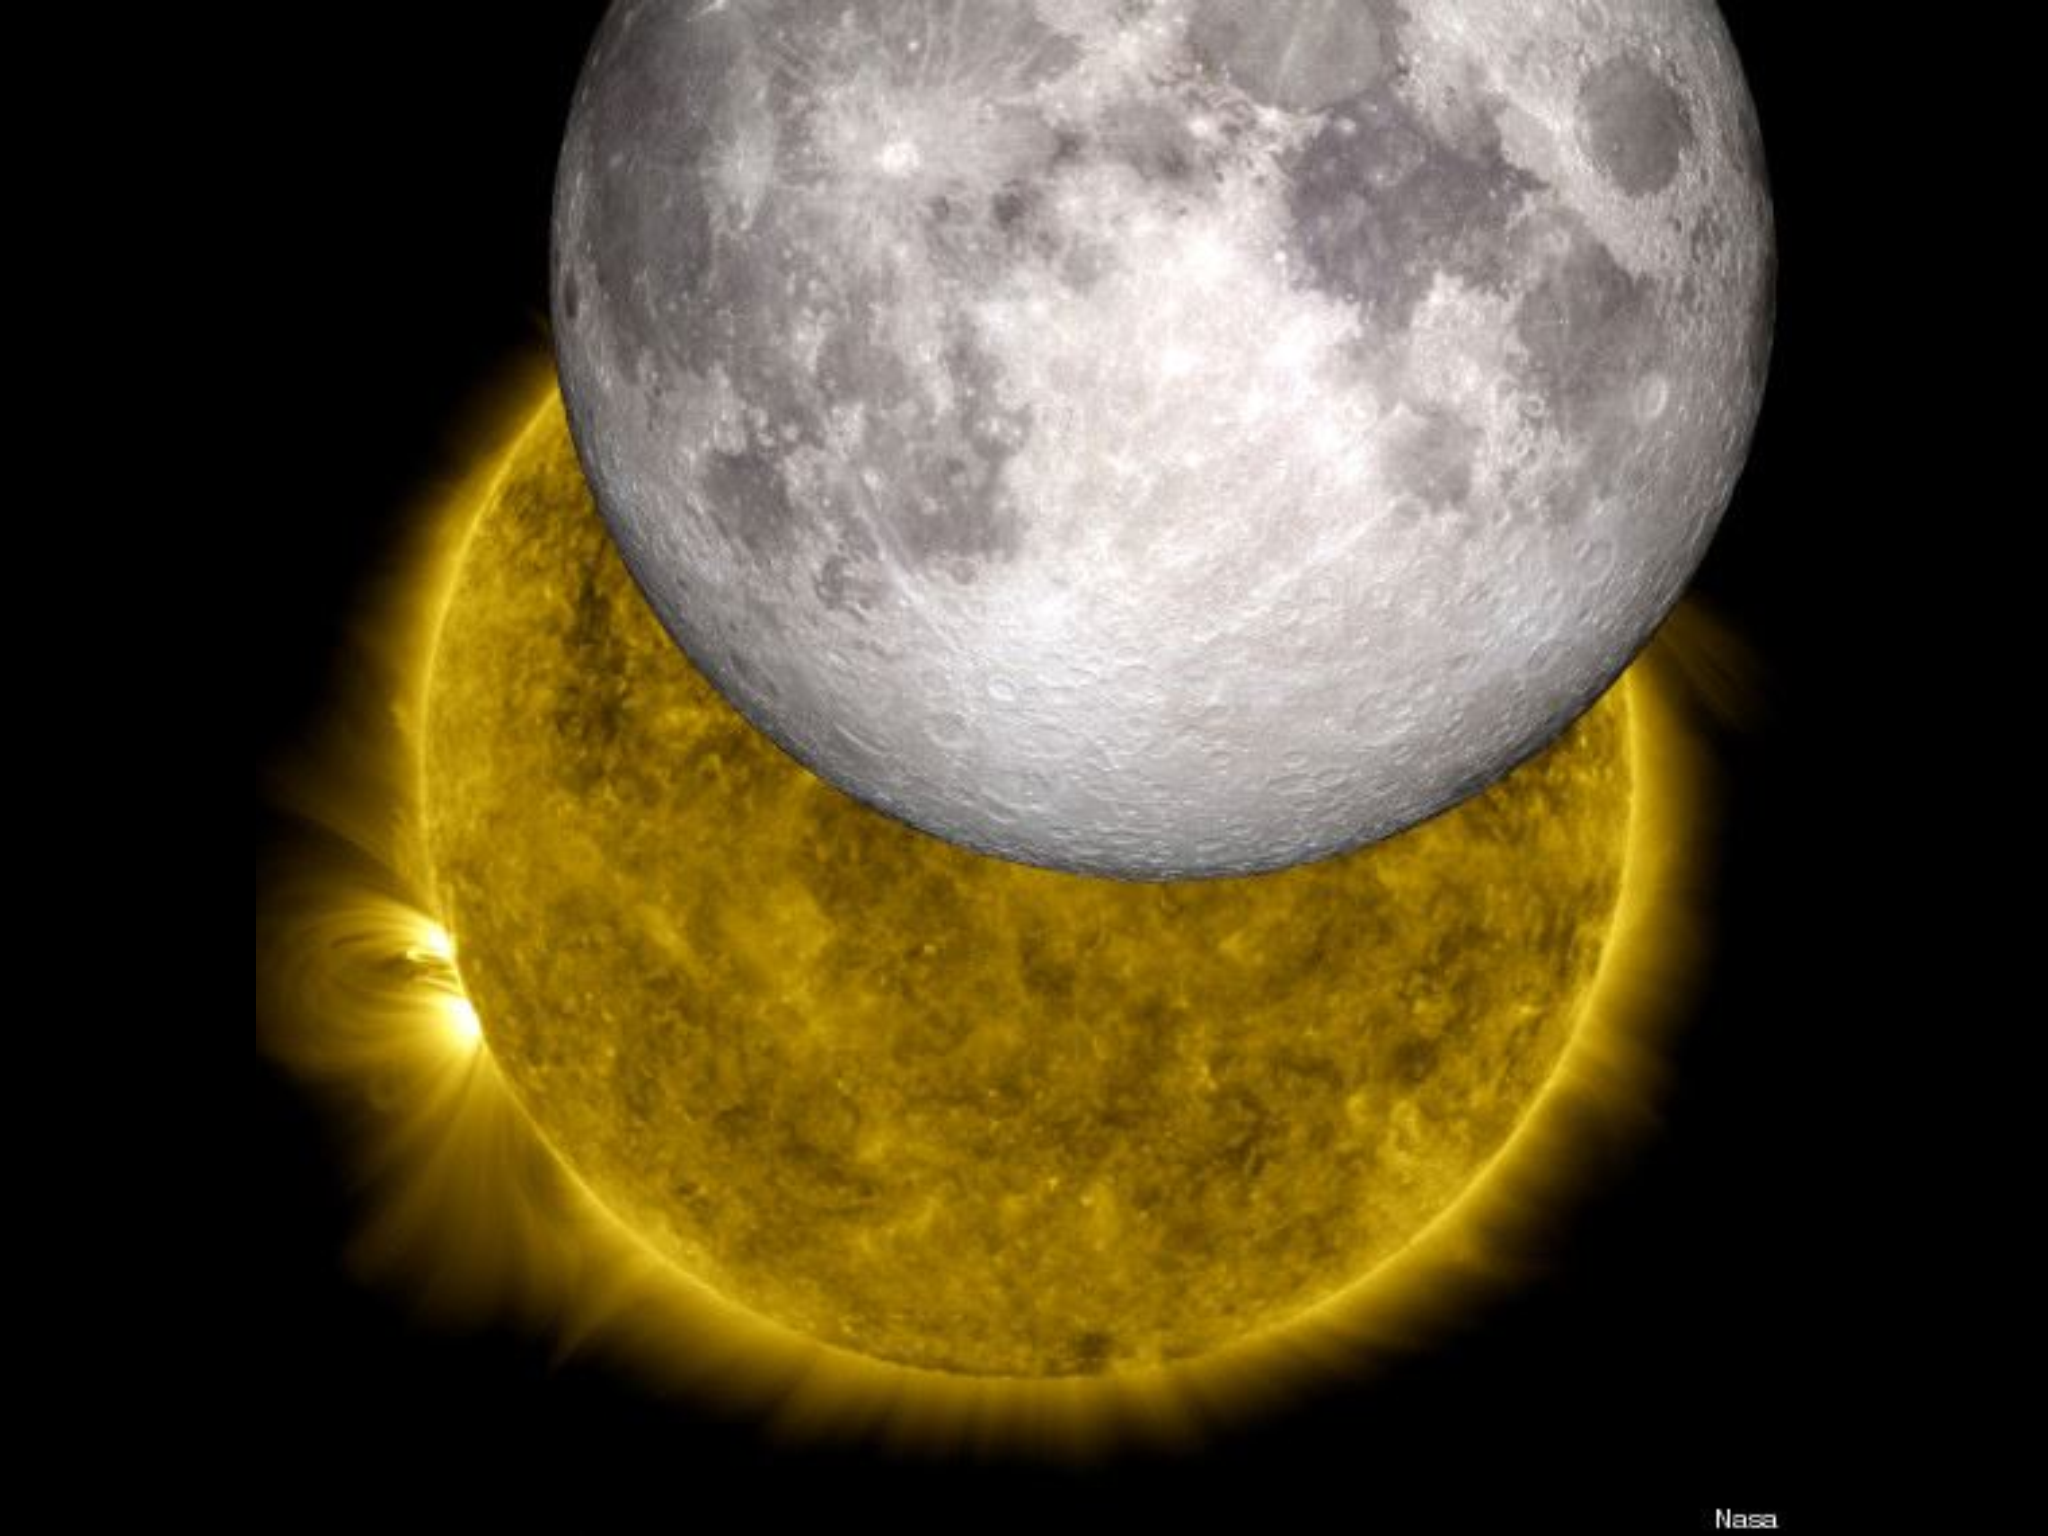 Given the sun is 400 X bigger than the moon, the fact they appear the exact same size is... miraculous!